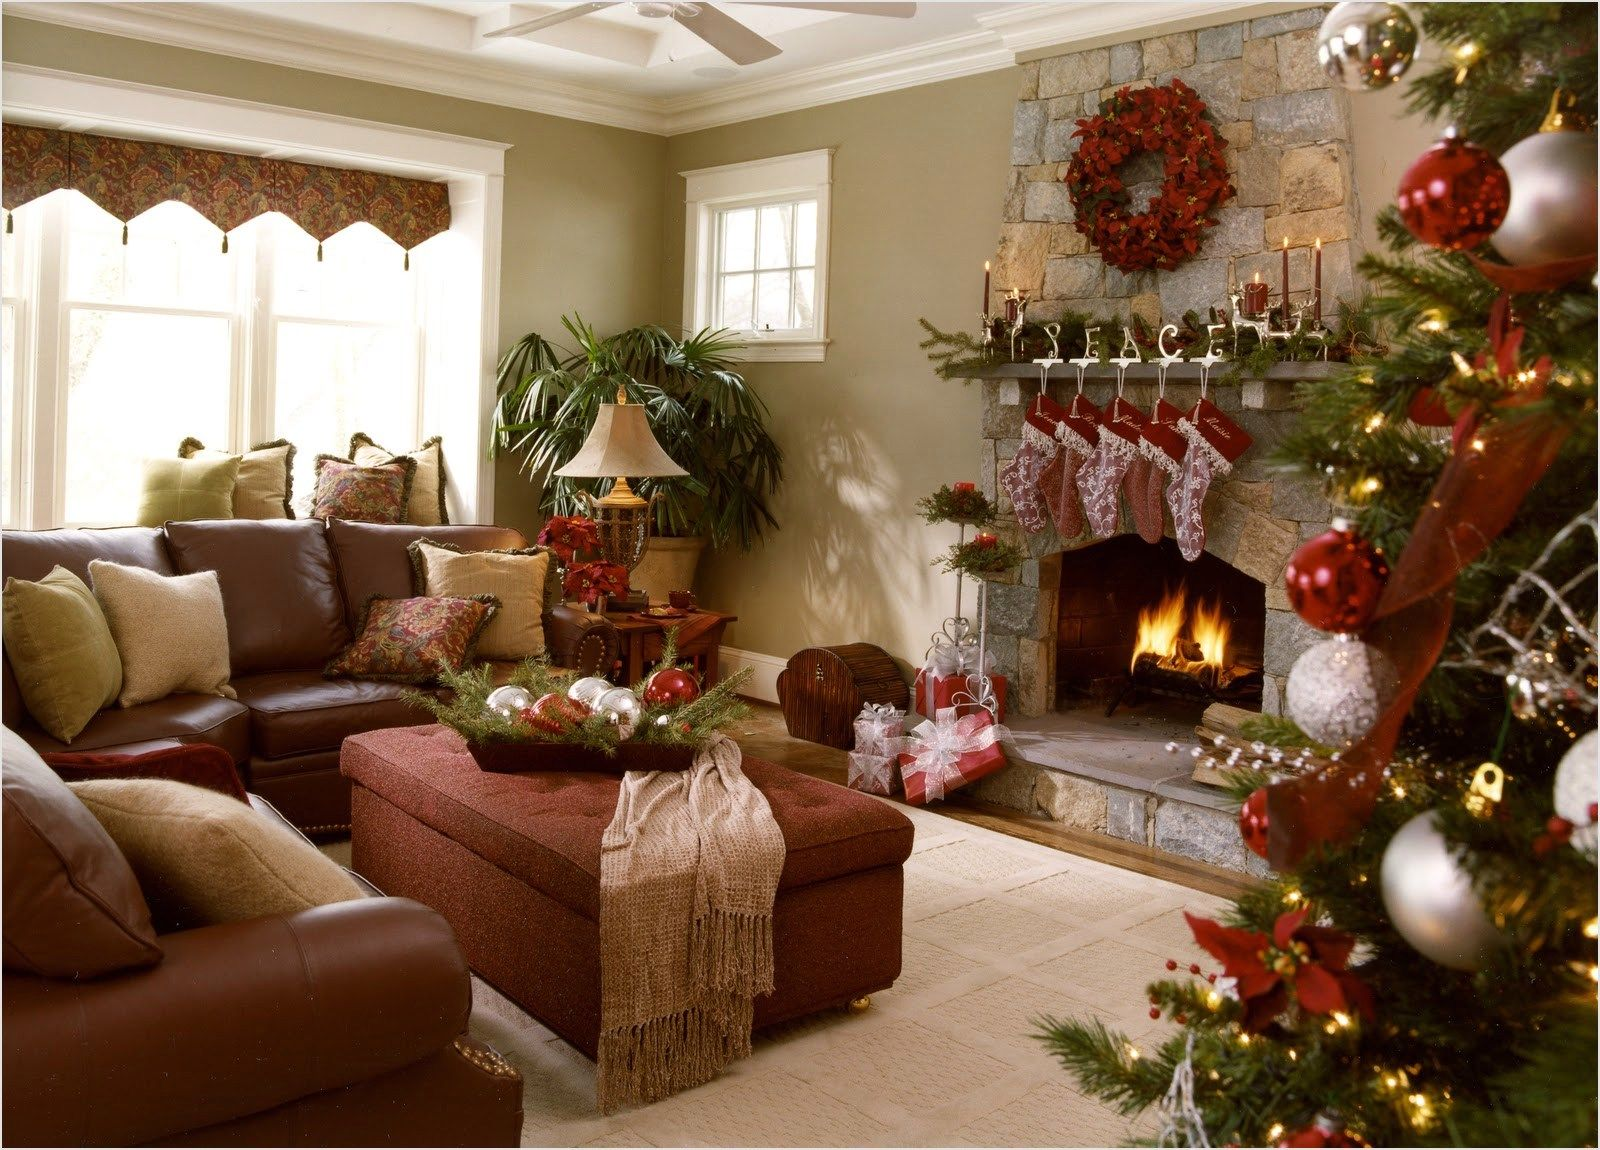 44 Simple Christmas Decorations Living Room Ideas Christmas Decorations Living Room Christmas Room Christmas Living Rooms